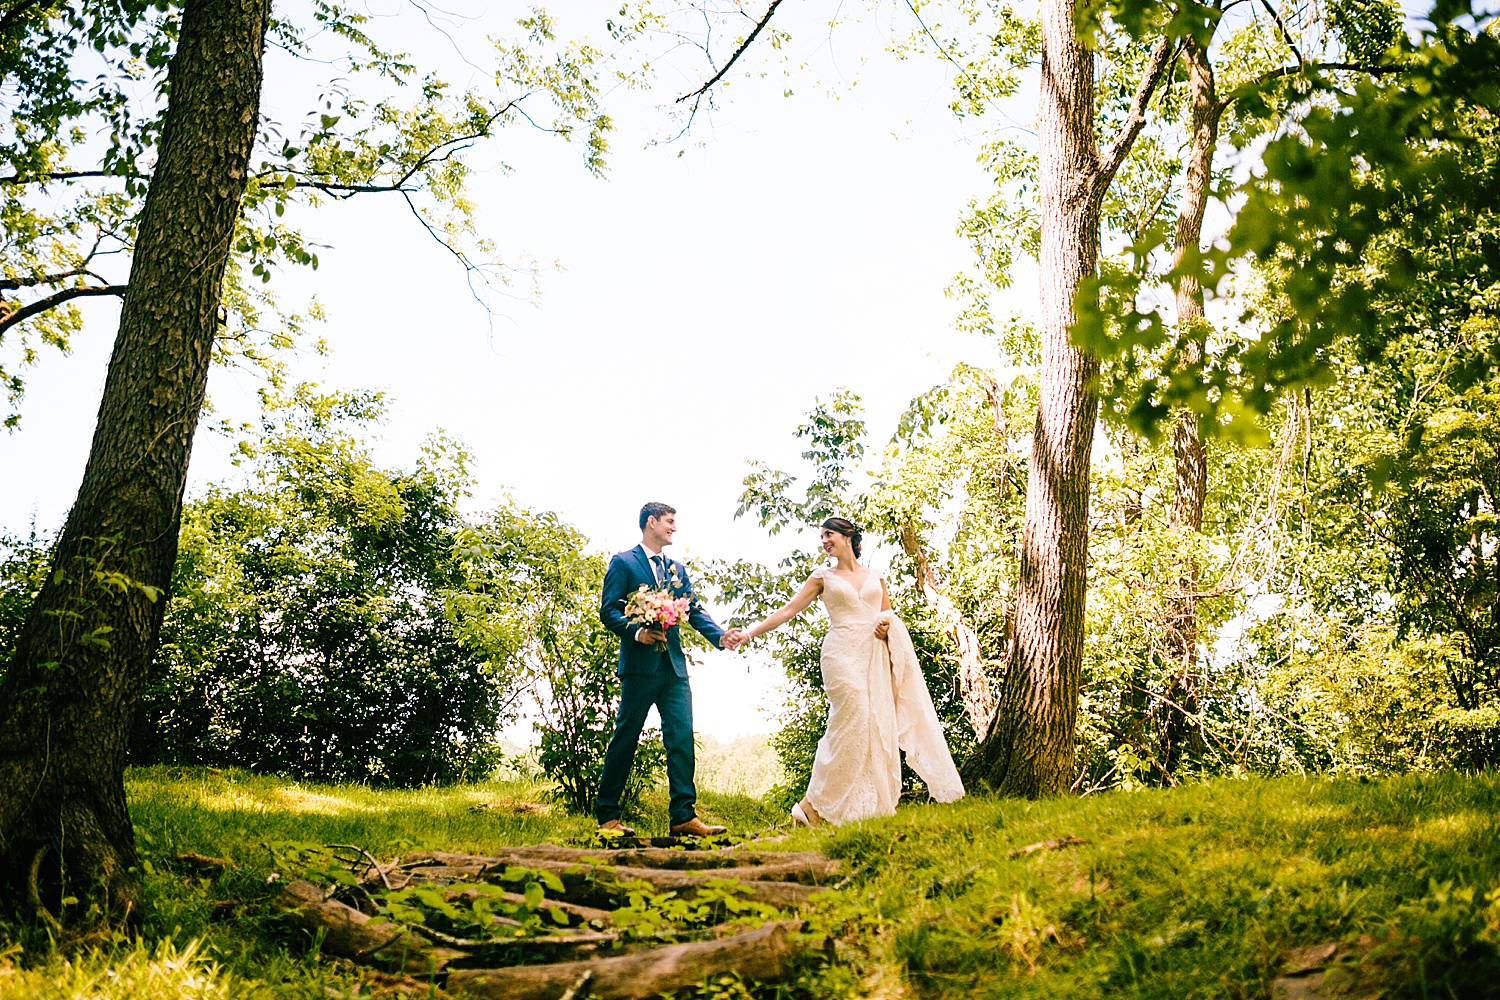 emilyaustin_rosebank_winery_newhope_farm_wedding_image060.jpg